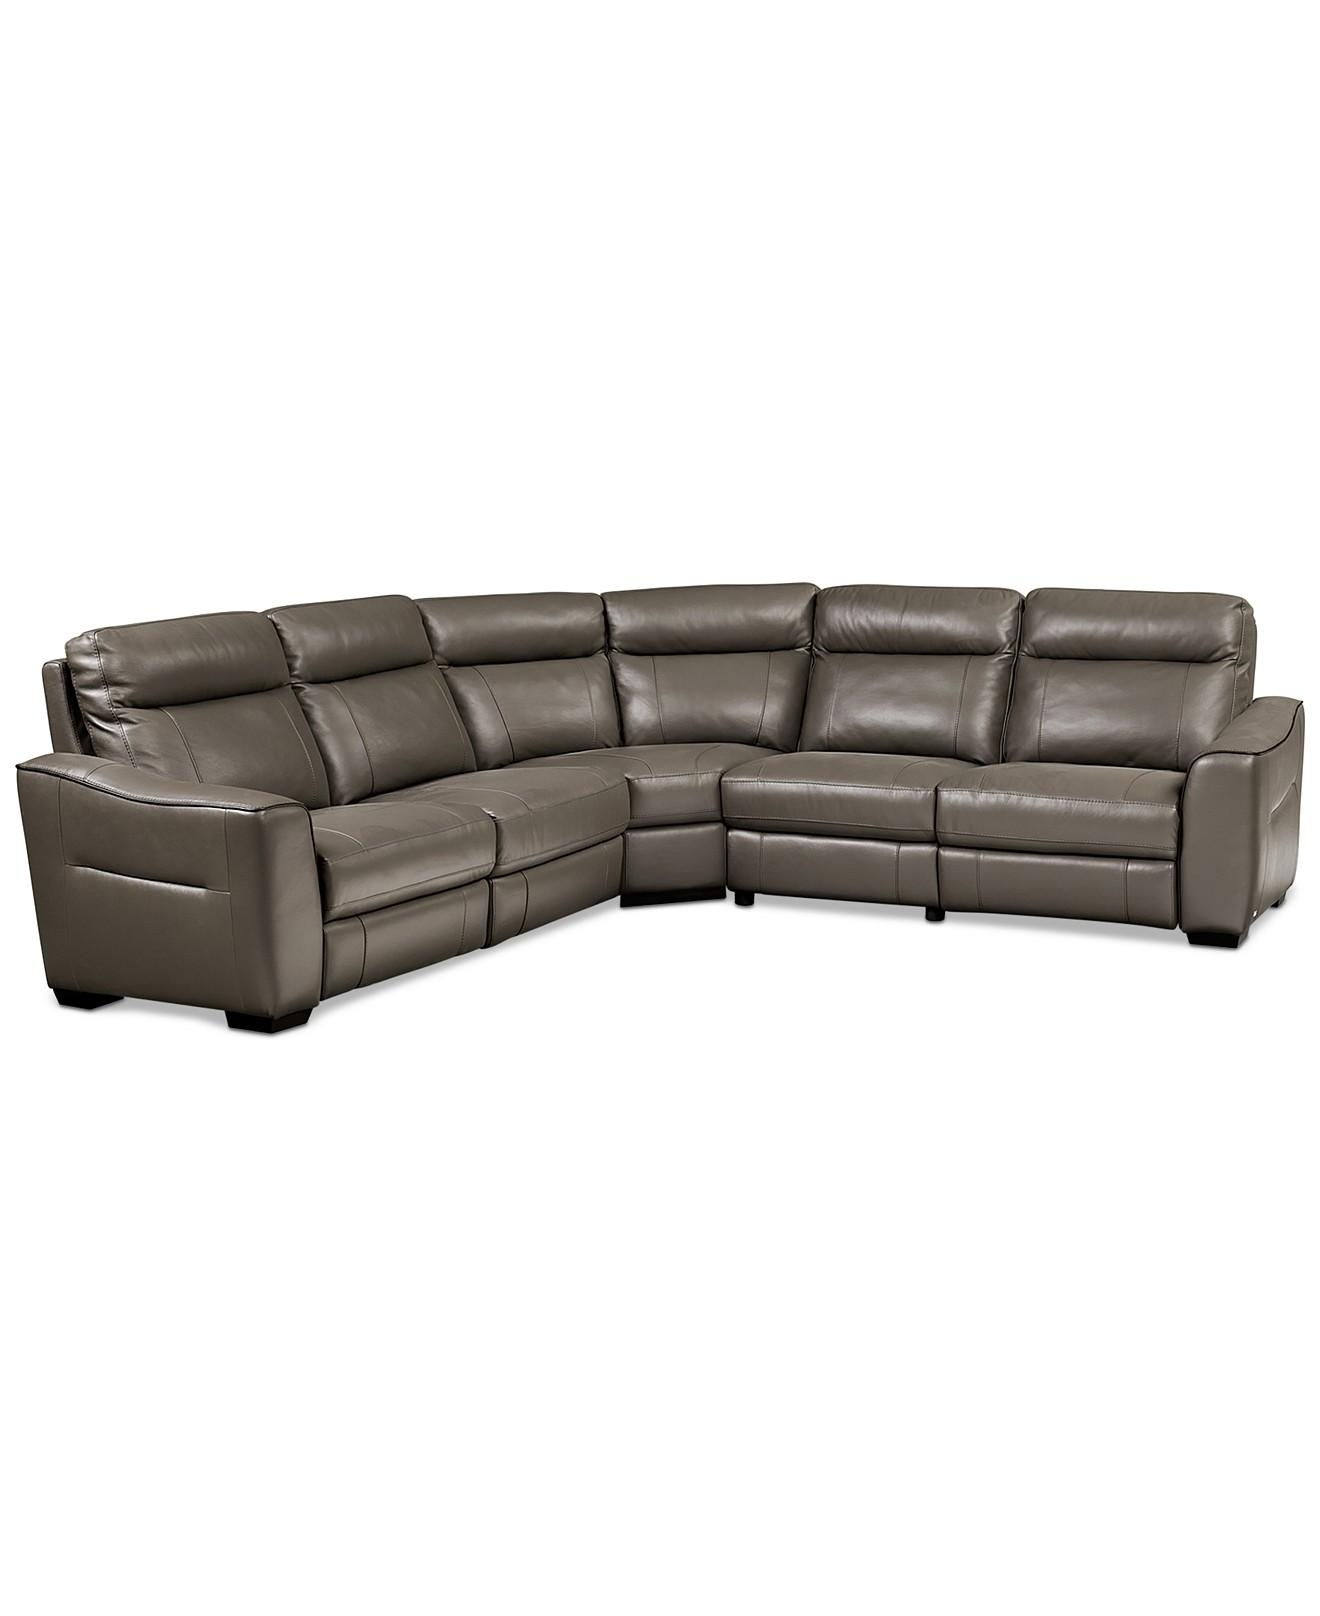 Sofas Center : Macys Leather Sofas For Salemacys Power Motion Regarding Macys Leather Sofas Sectionals (Image 13 of 20)